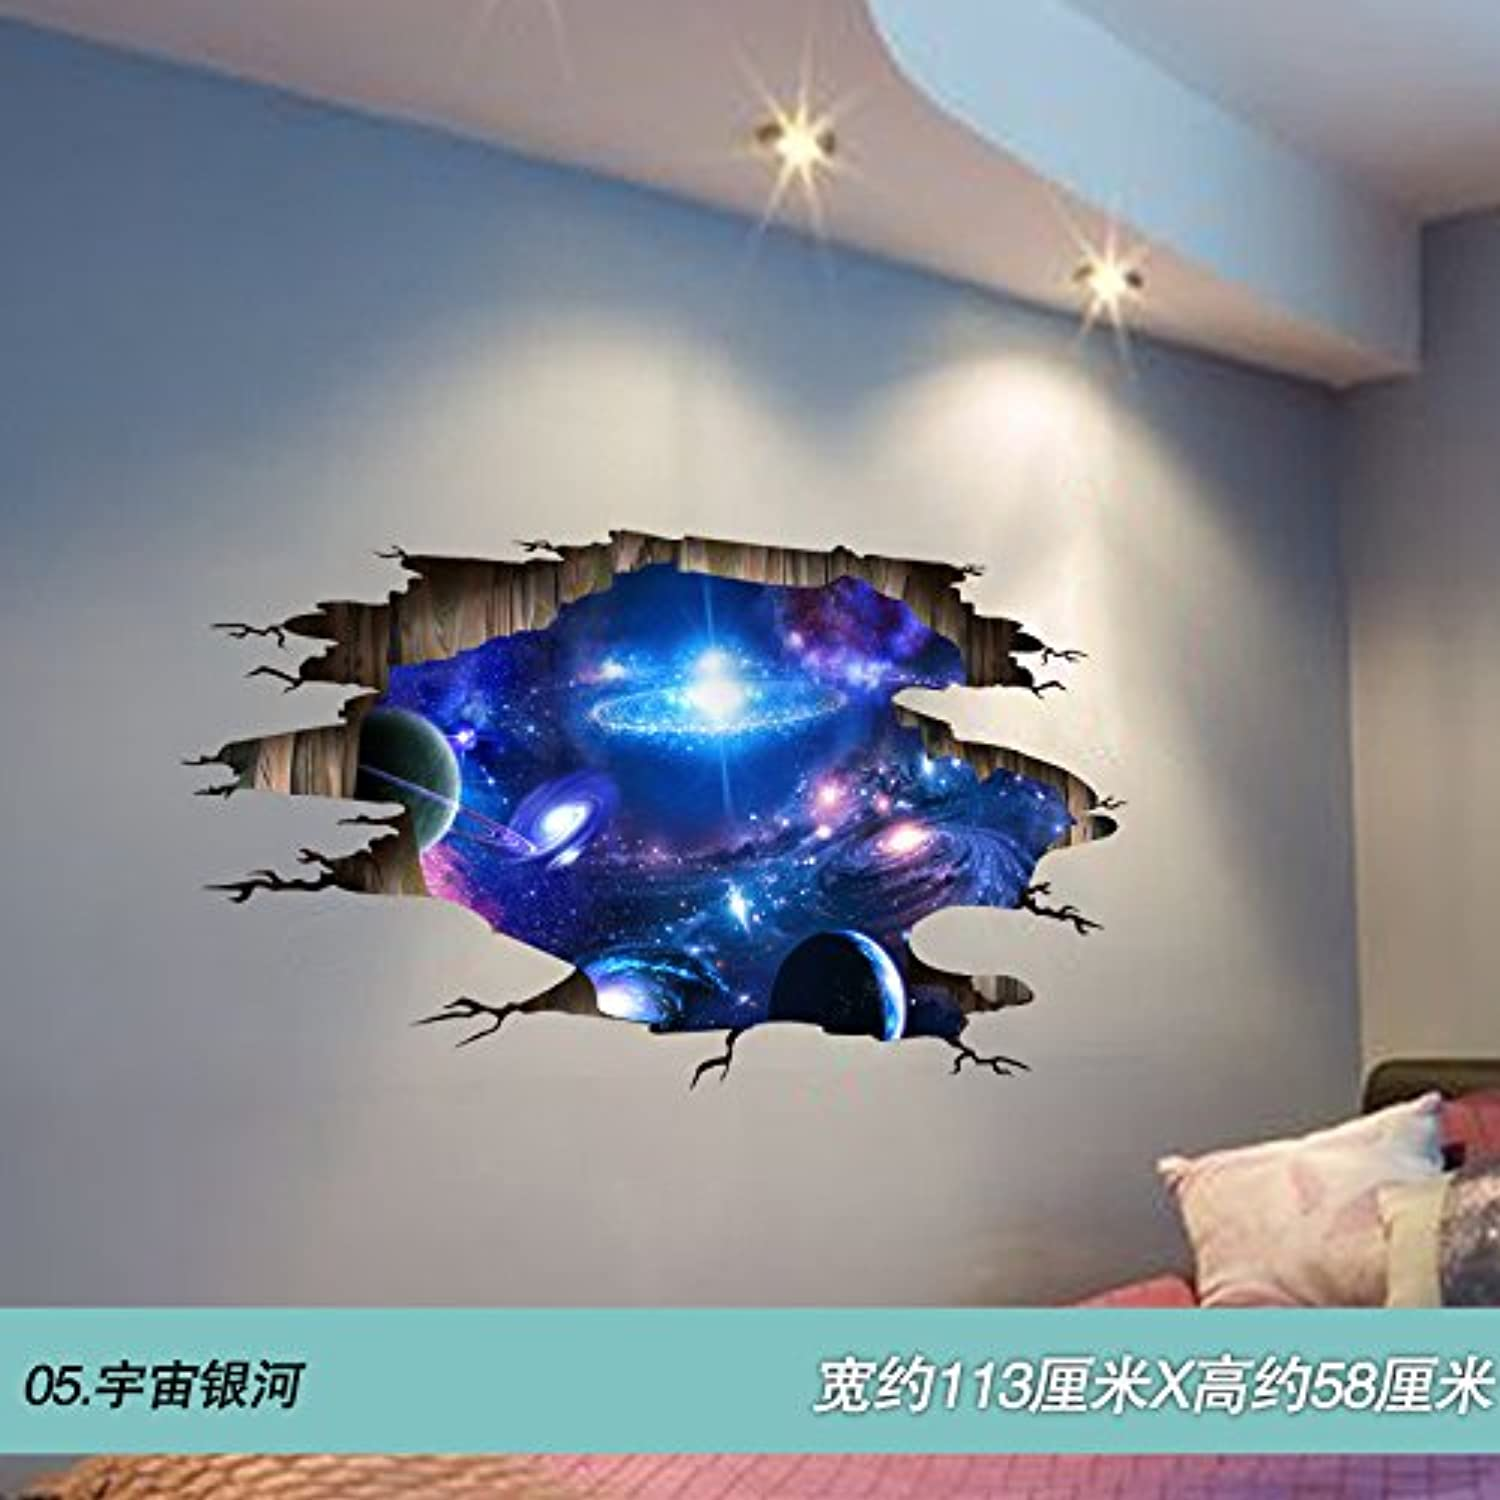 Znzbzt Wallpaper self Adhesive Sticker Poster 3D Wall Decoration Room Wall Paper Posters, Universe